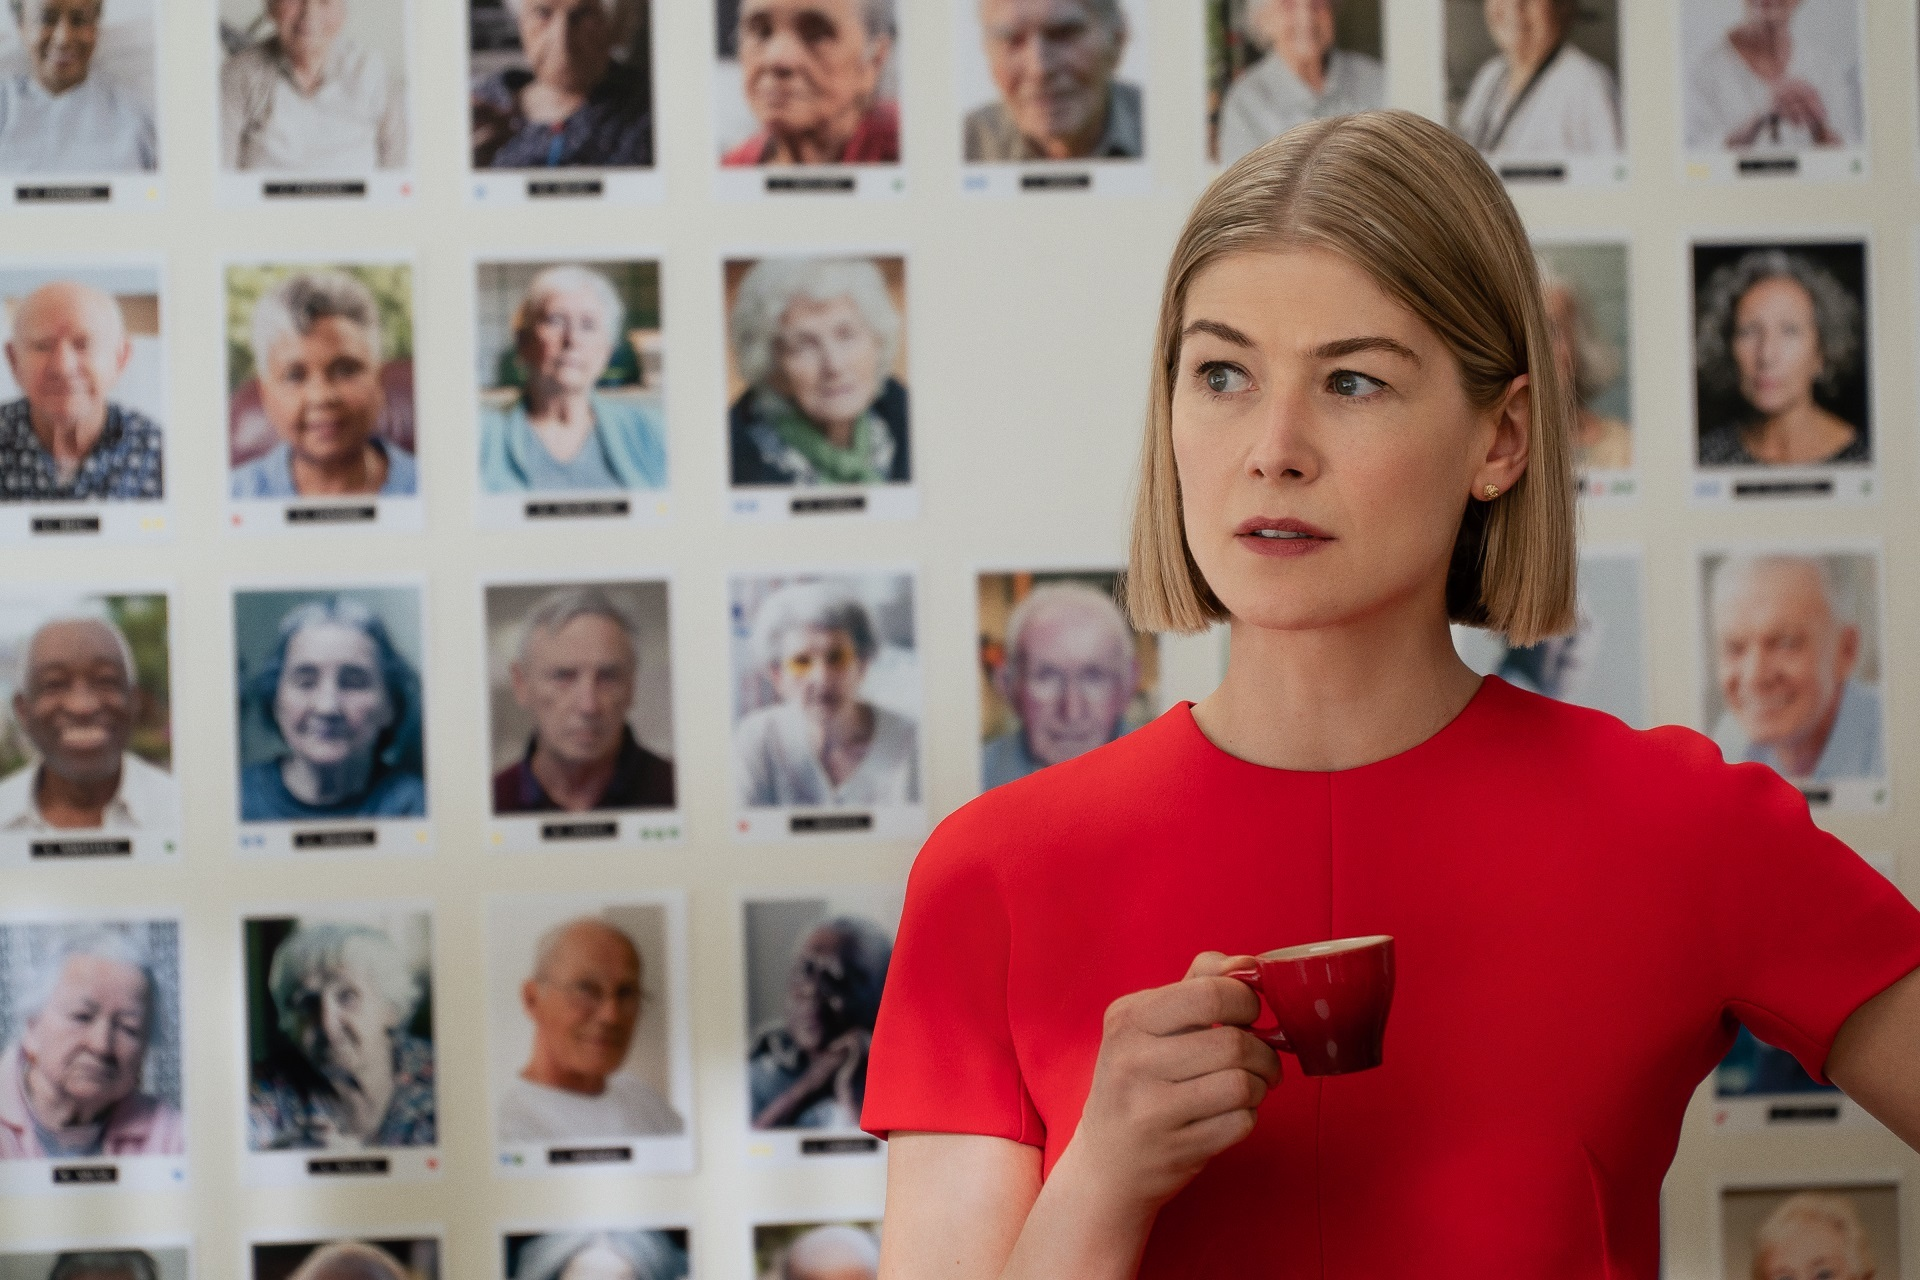 Film Review: I Care A Lot is further proof of Rosamund Pike's devilish star  quality - The AU Review